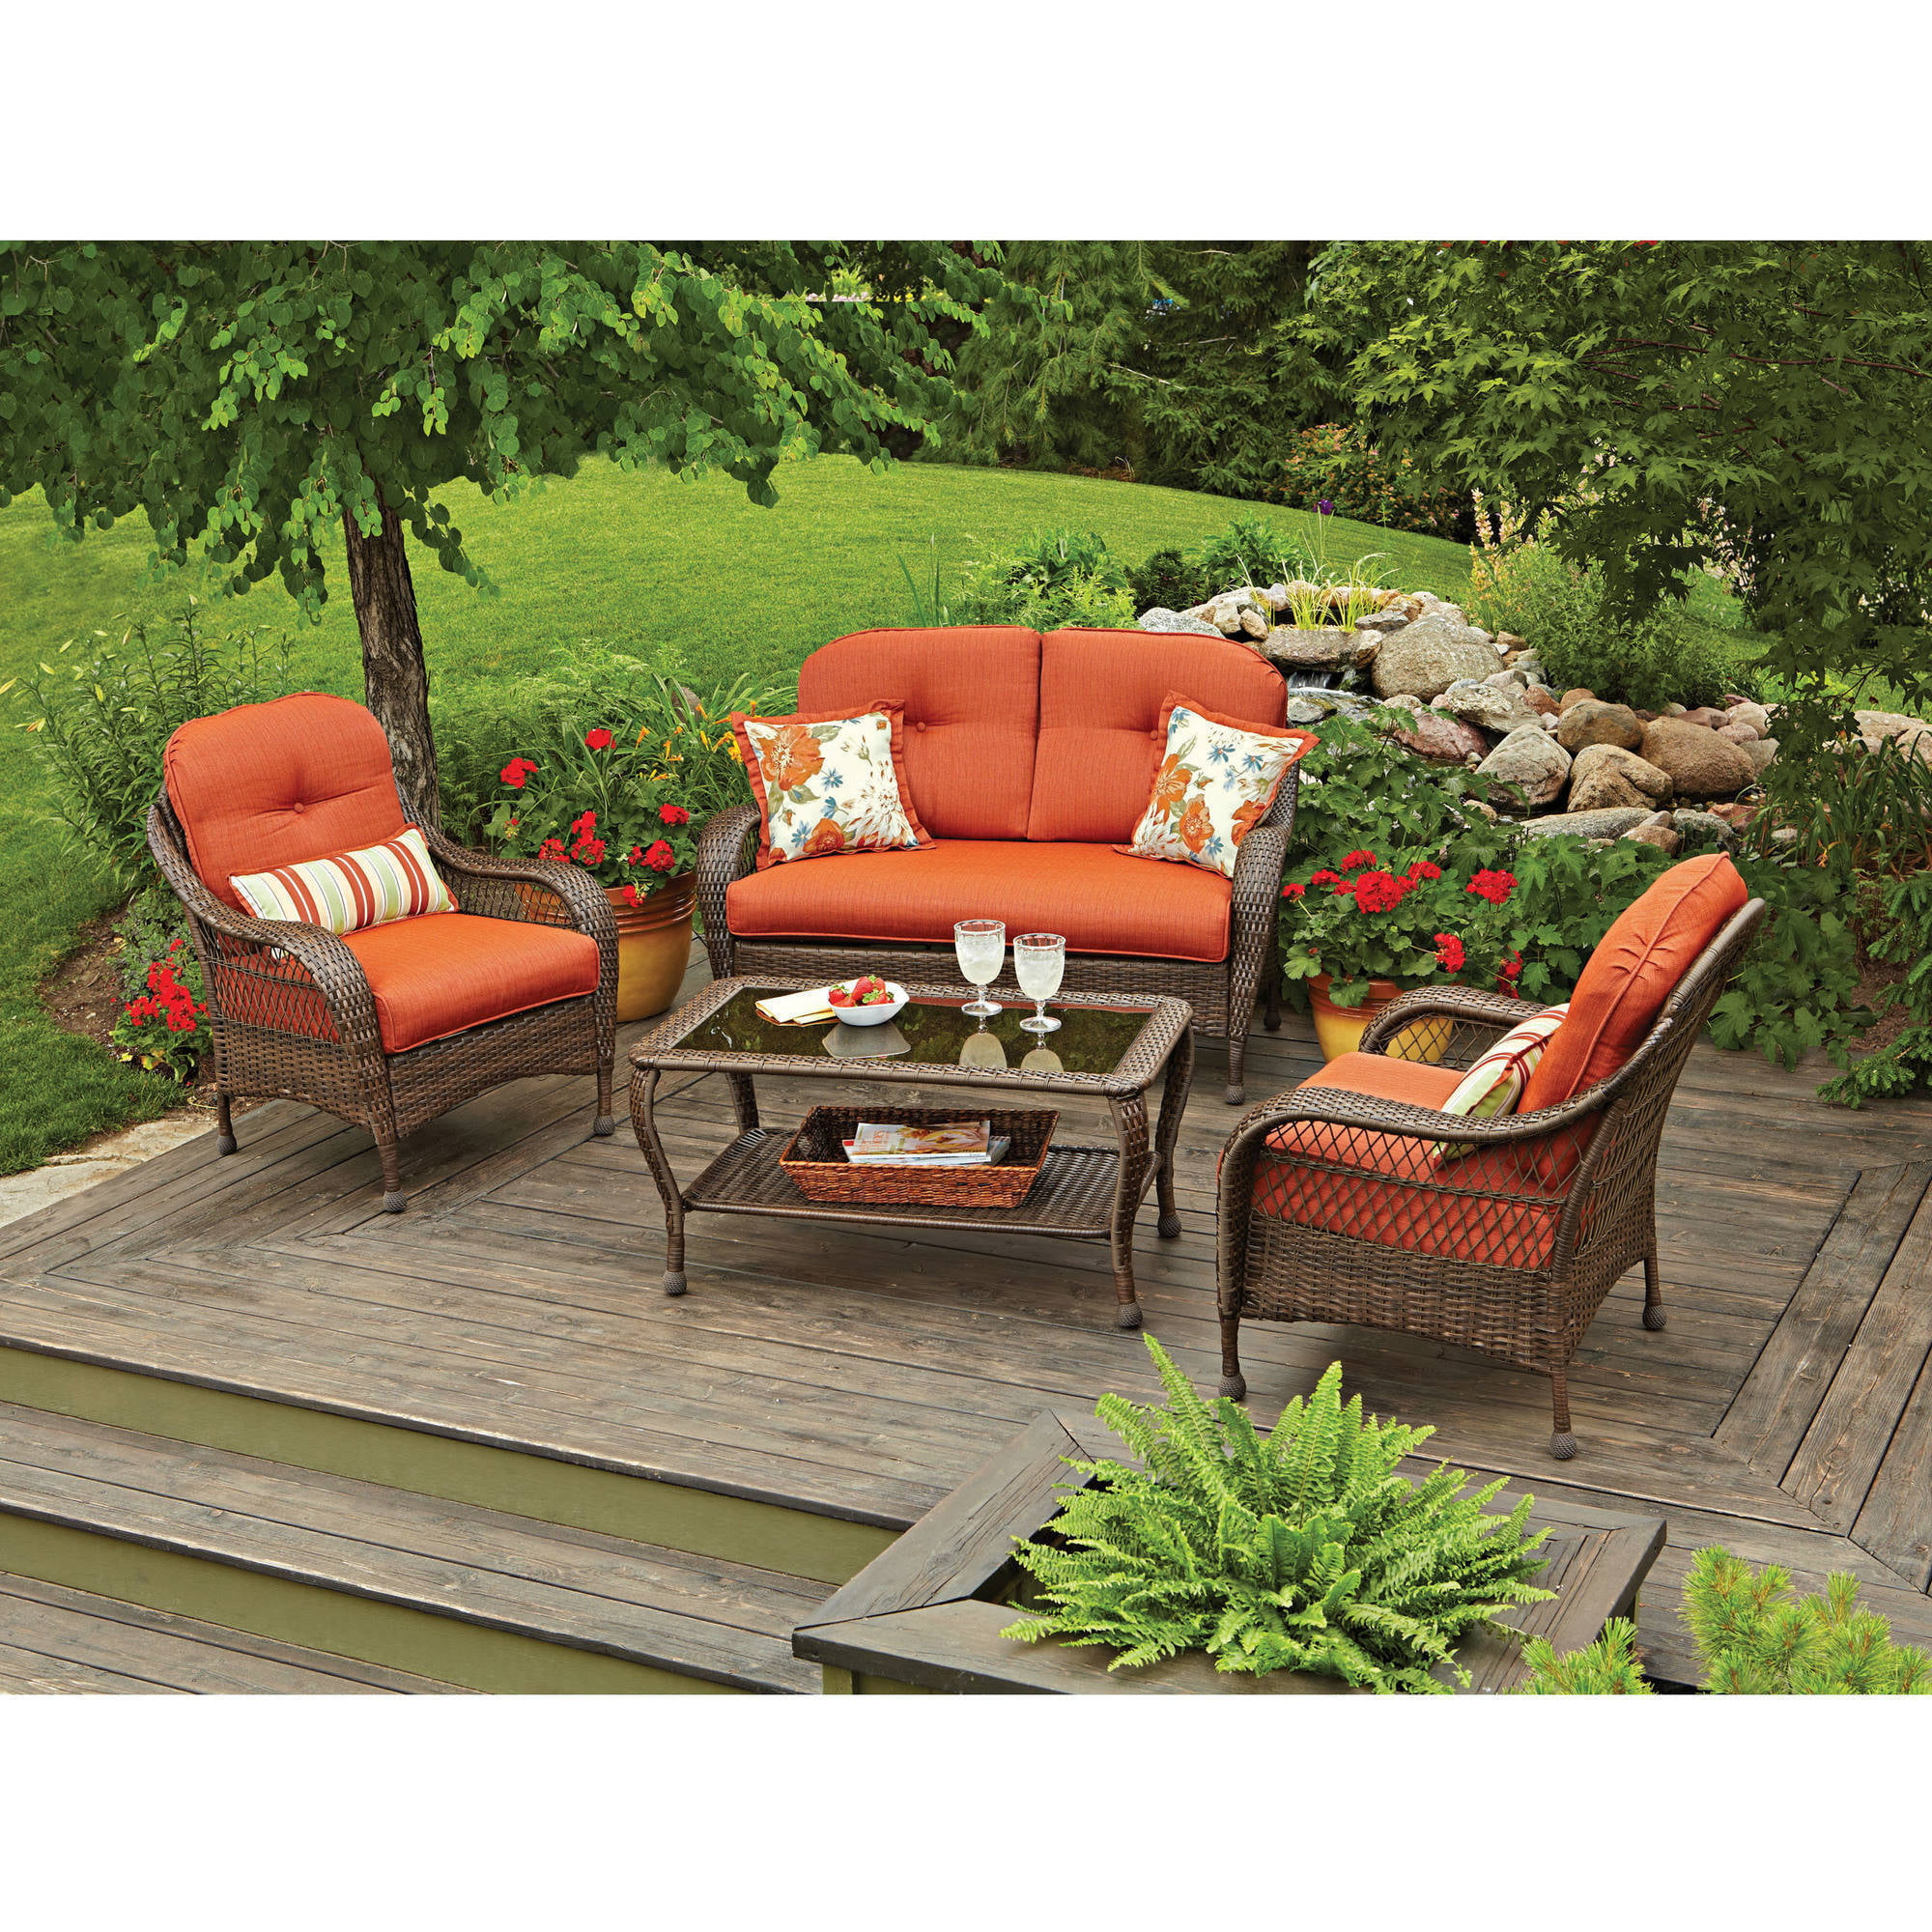 Palermo Outdoor Brown Wicker Piece Chat Set With Cushions - Wicker patio furniture sets